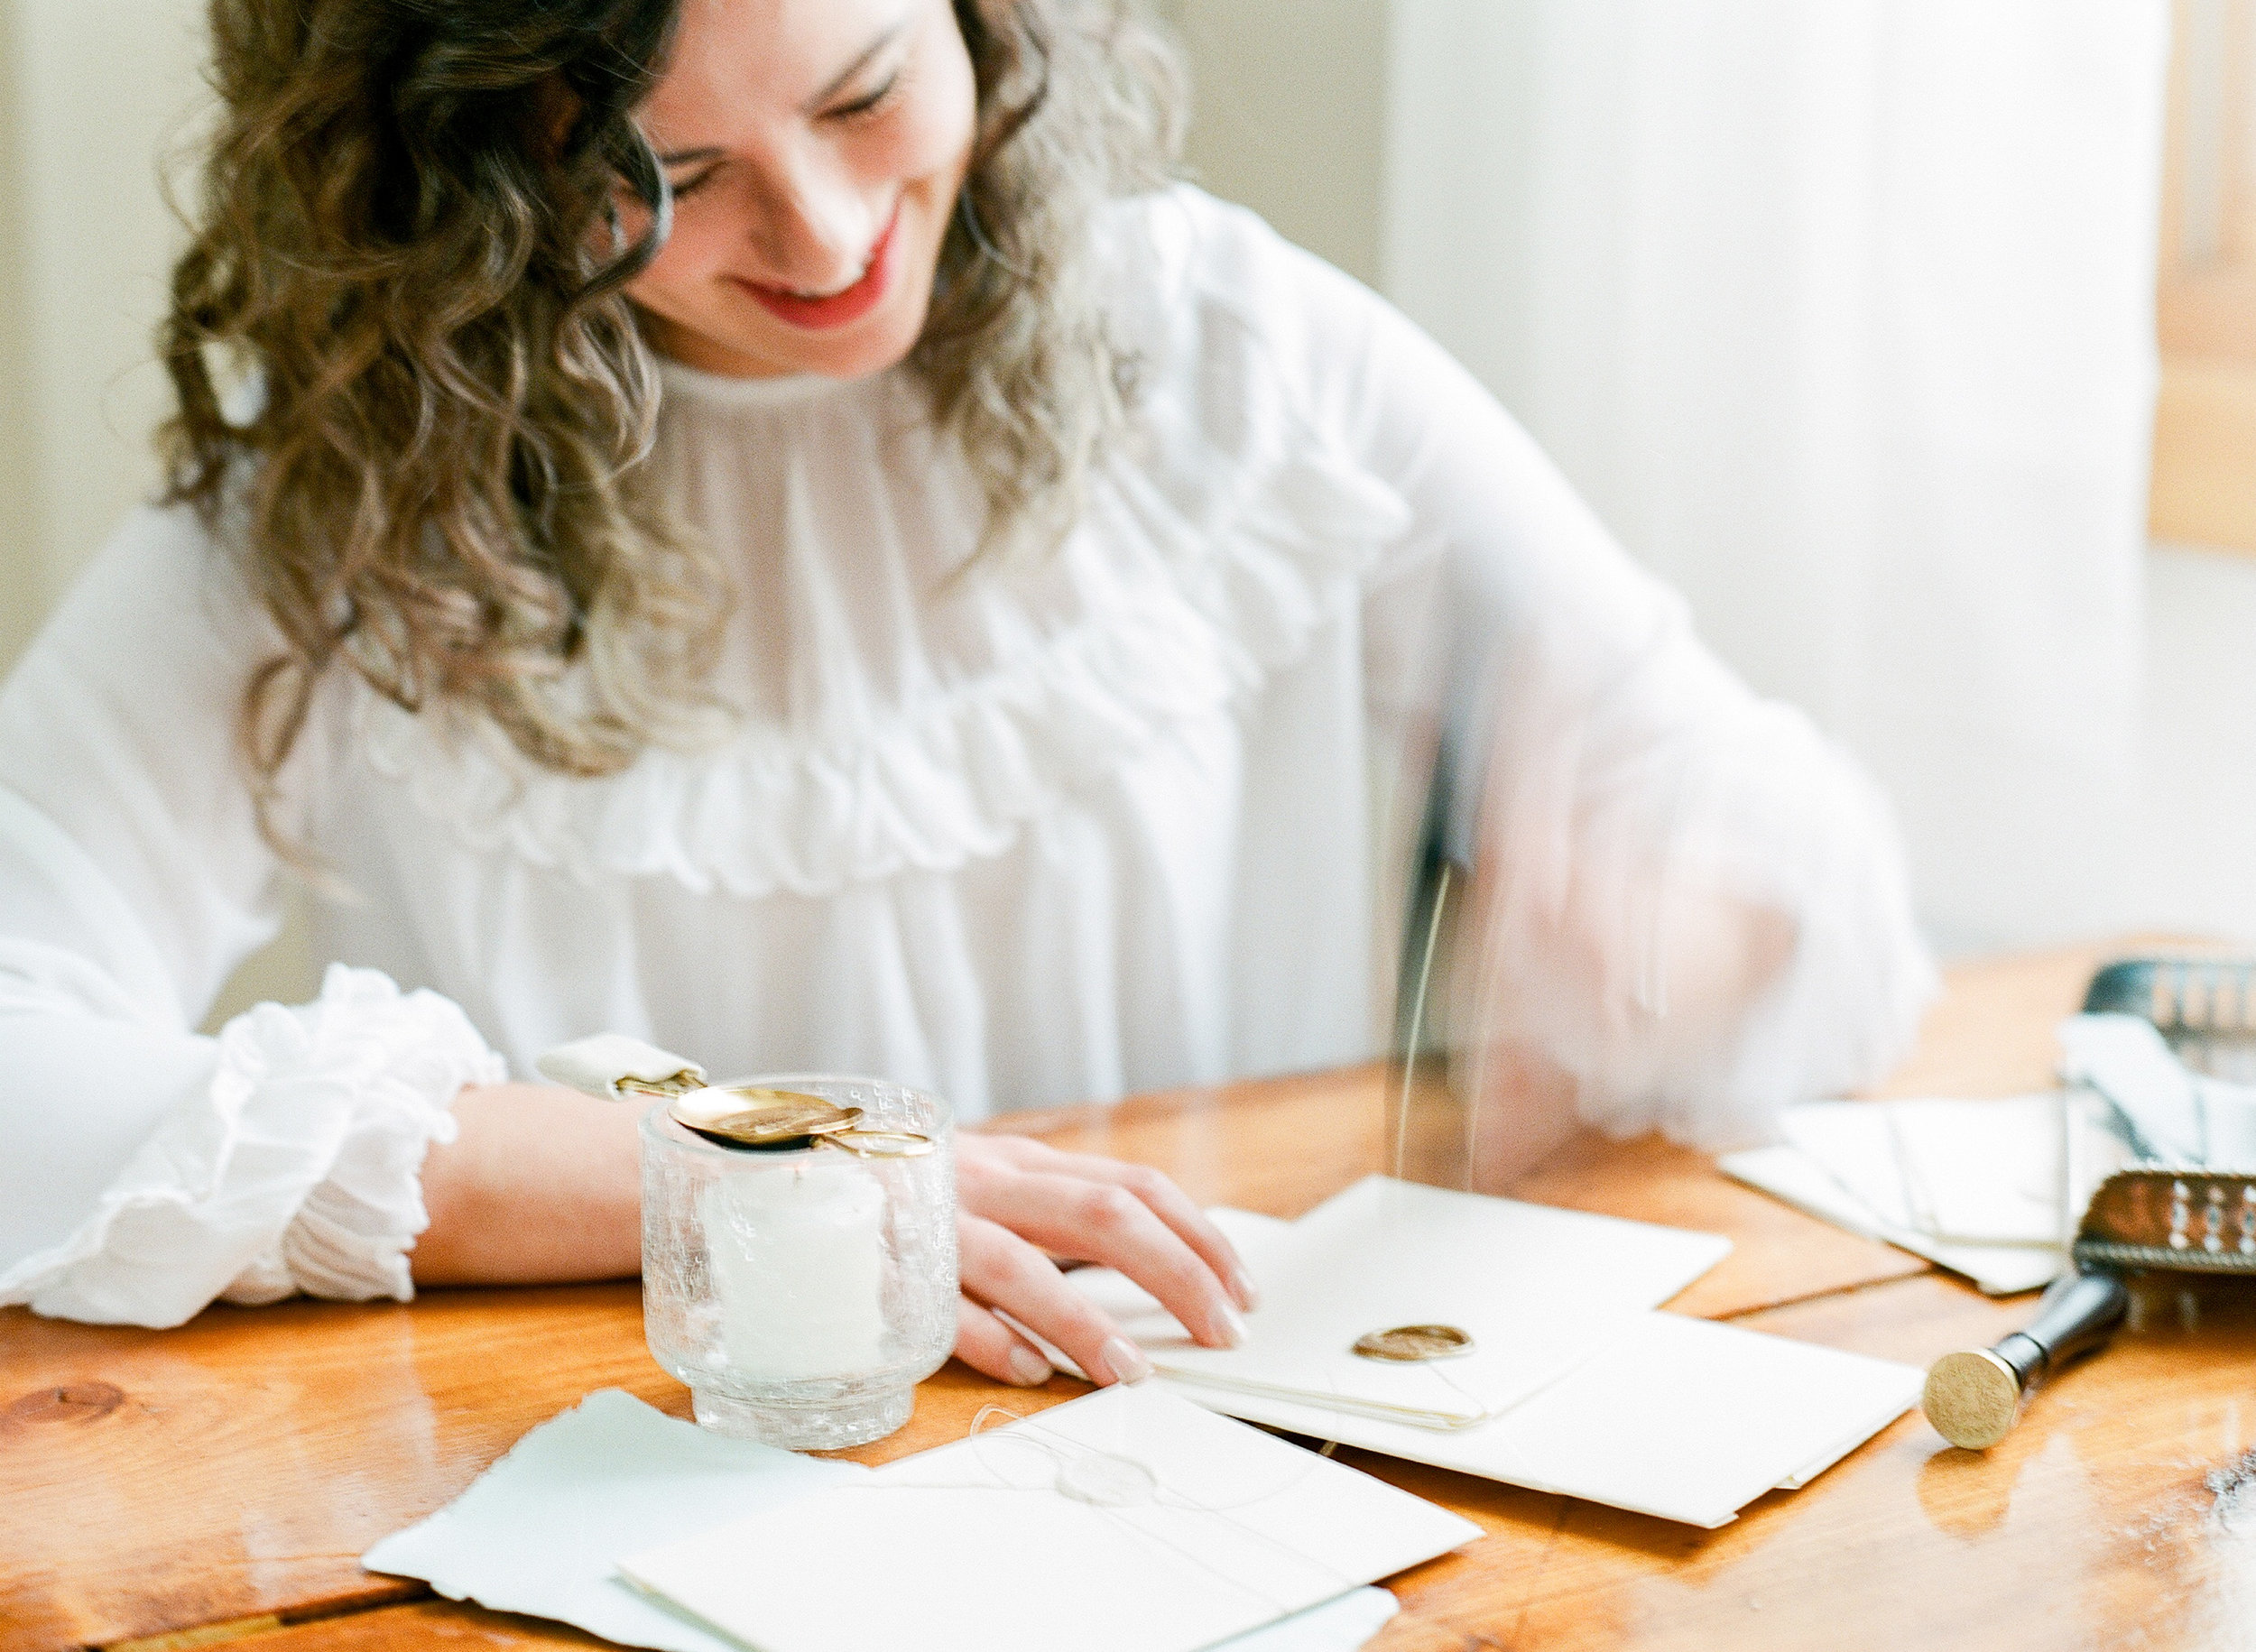 Calligraphy tools and tips for new business owners from Ciarra Claire Fine Art.